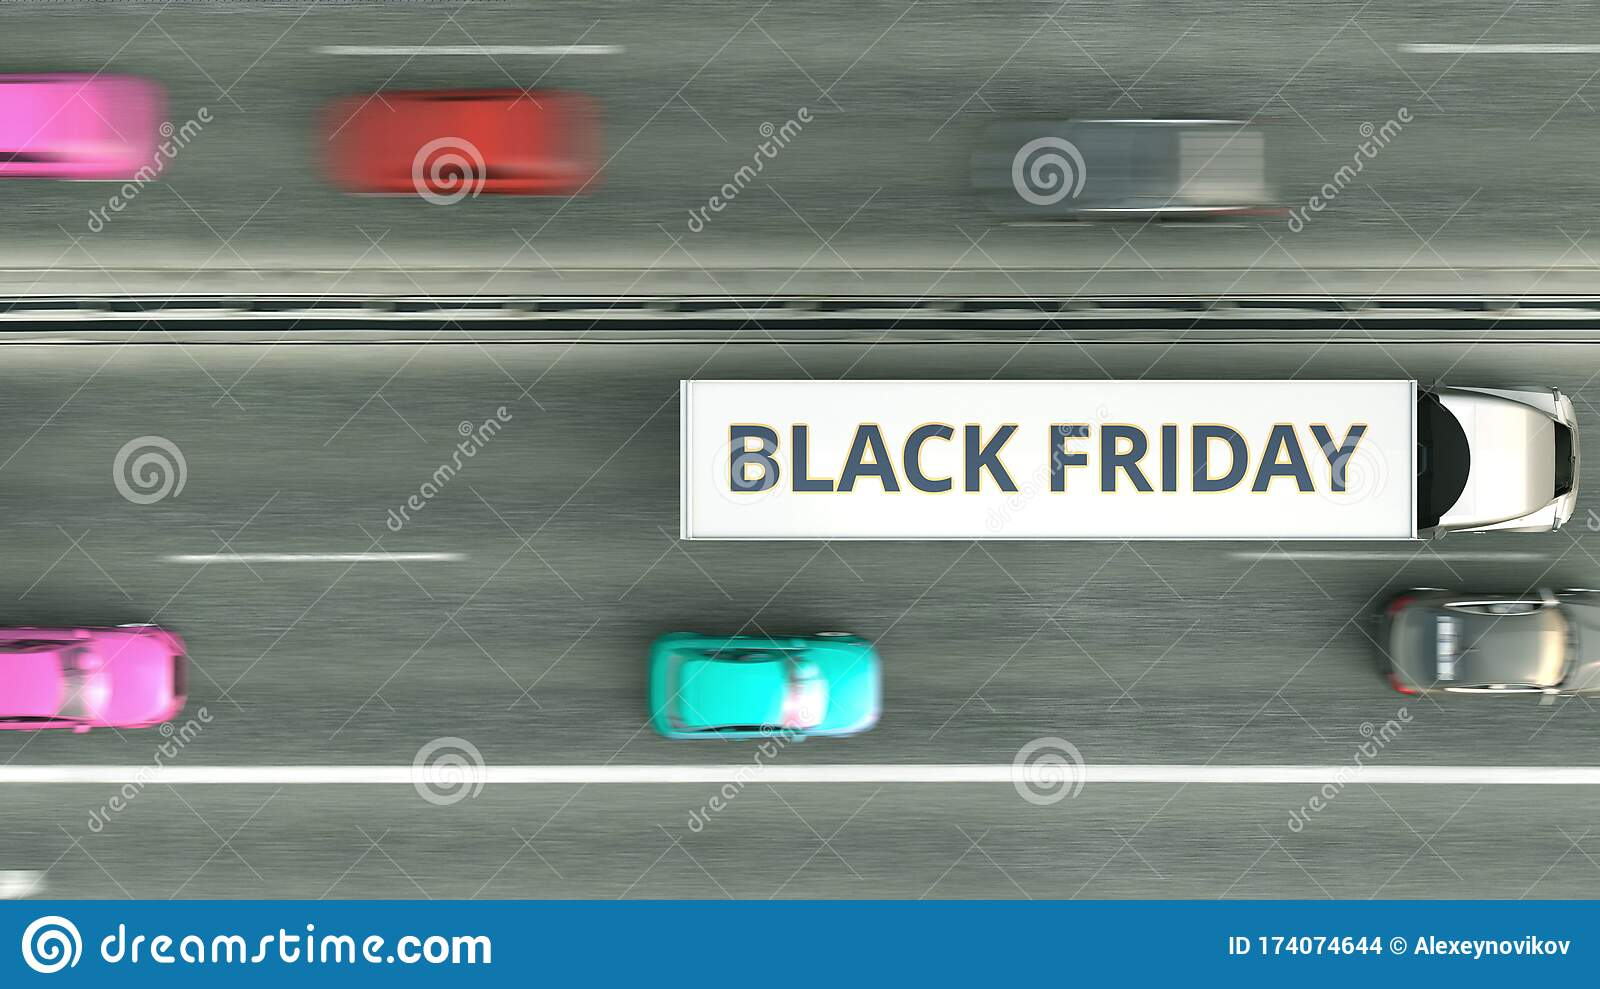 Aerial Overhead View Of Trailer Truck With Black Friday Text Driving Along The Highway 3d Rendering Stock Illustration Illustration Of Overhead Export 174074644